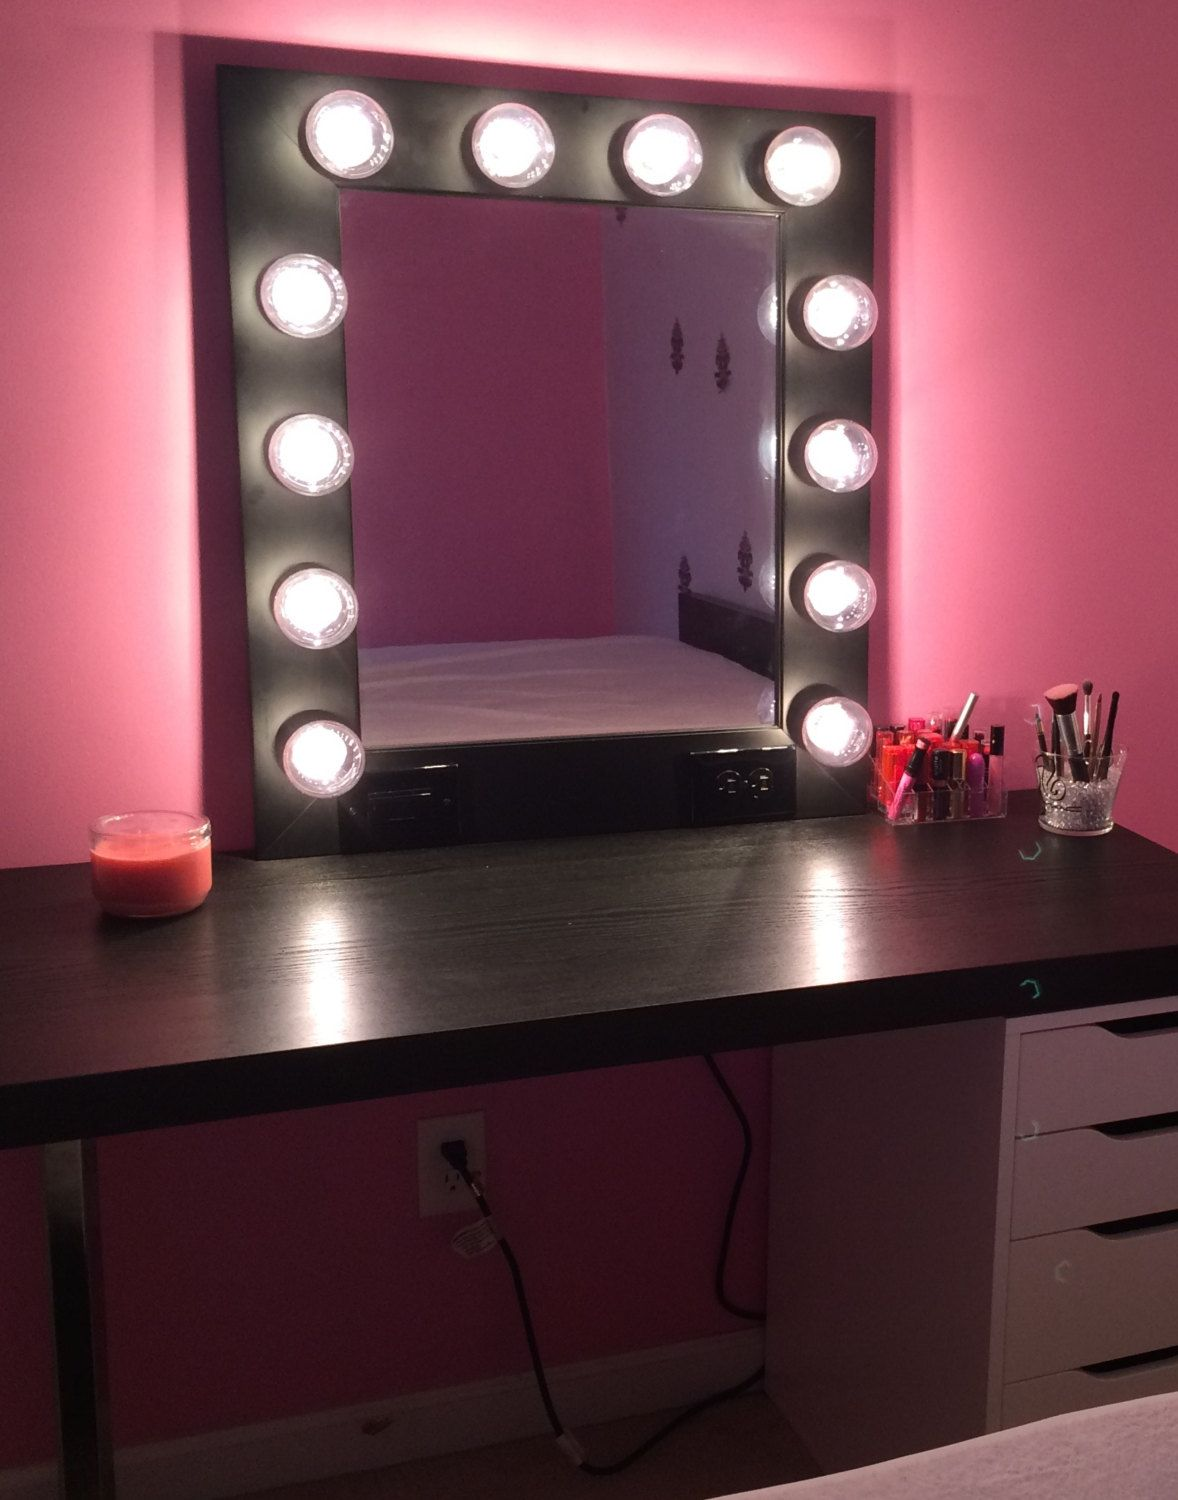 Furniture pink girl room wall paint color idea feat contemporary vanity makeup mirror with lights available built in digital led dimmer and power outlet plug it in watch it light up by customvanity on etsy aloadofball Image collections